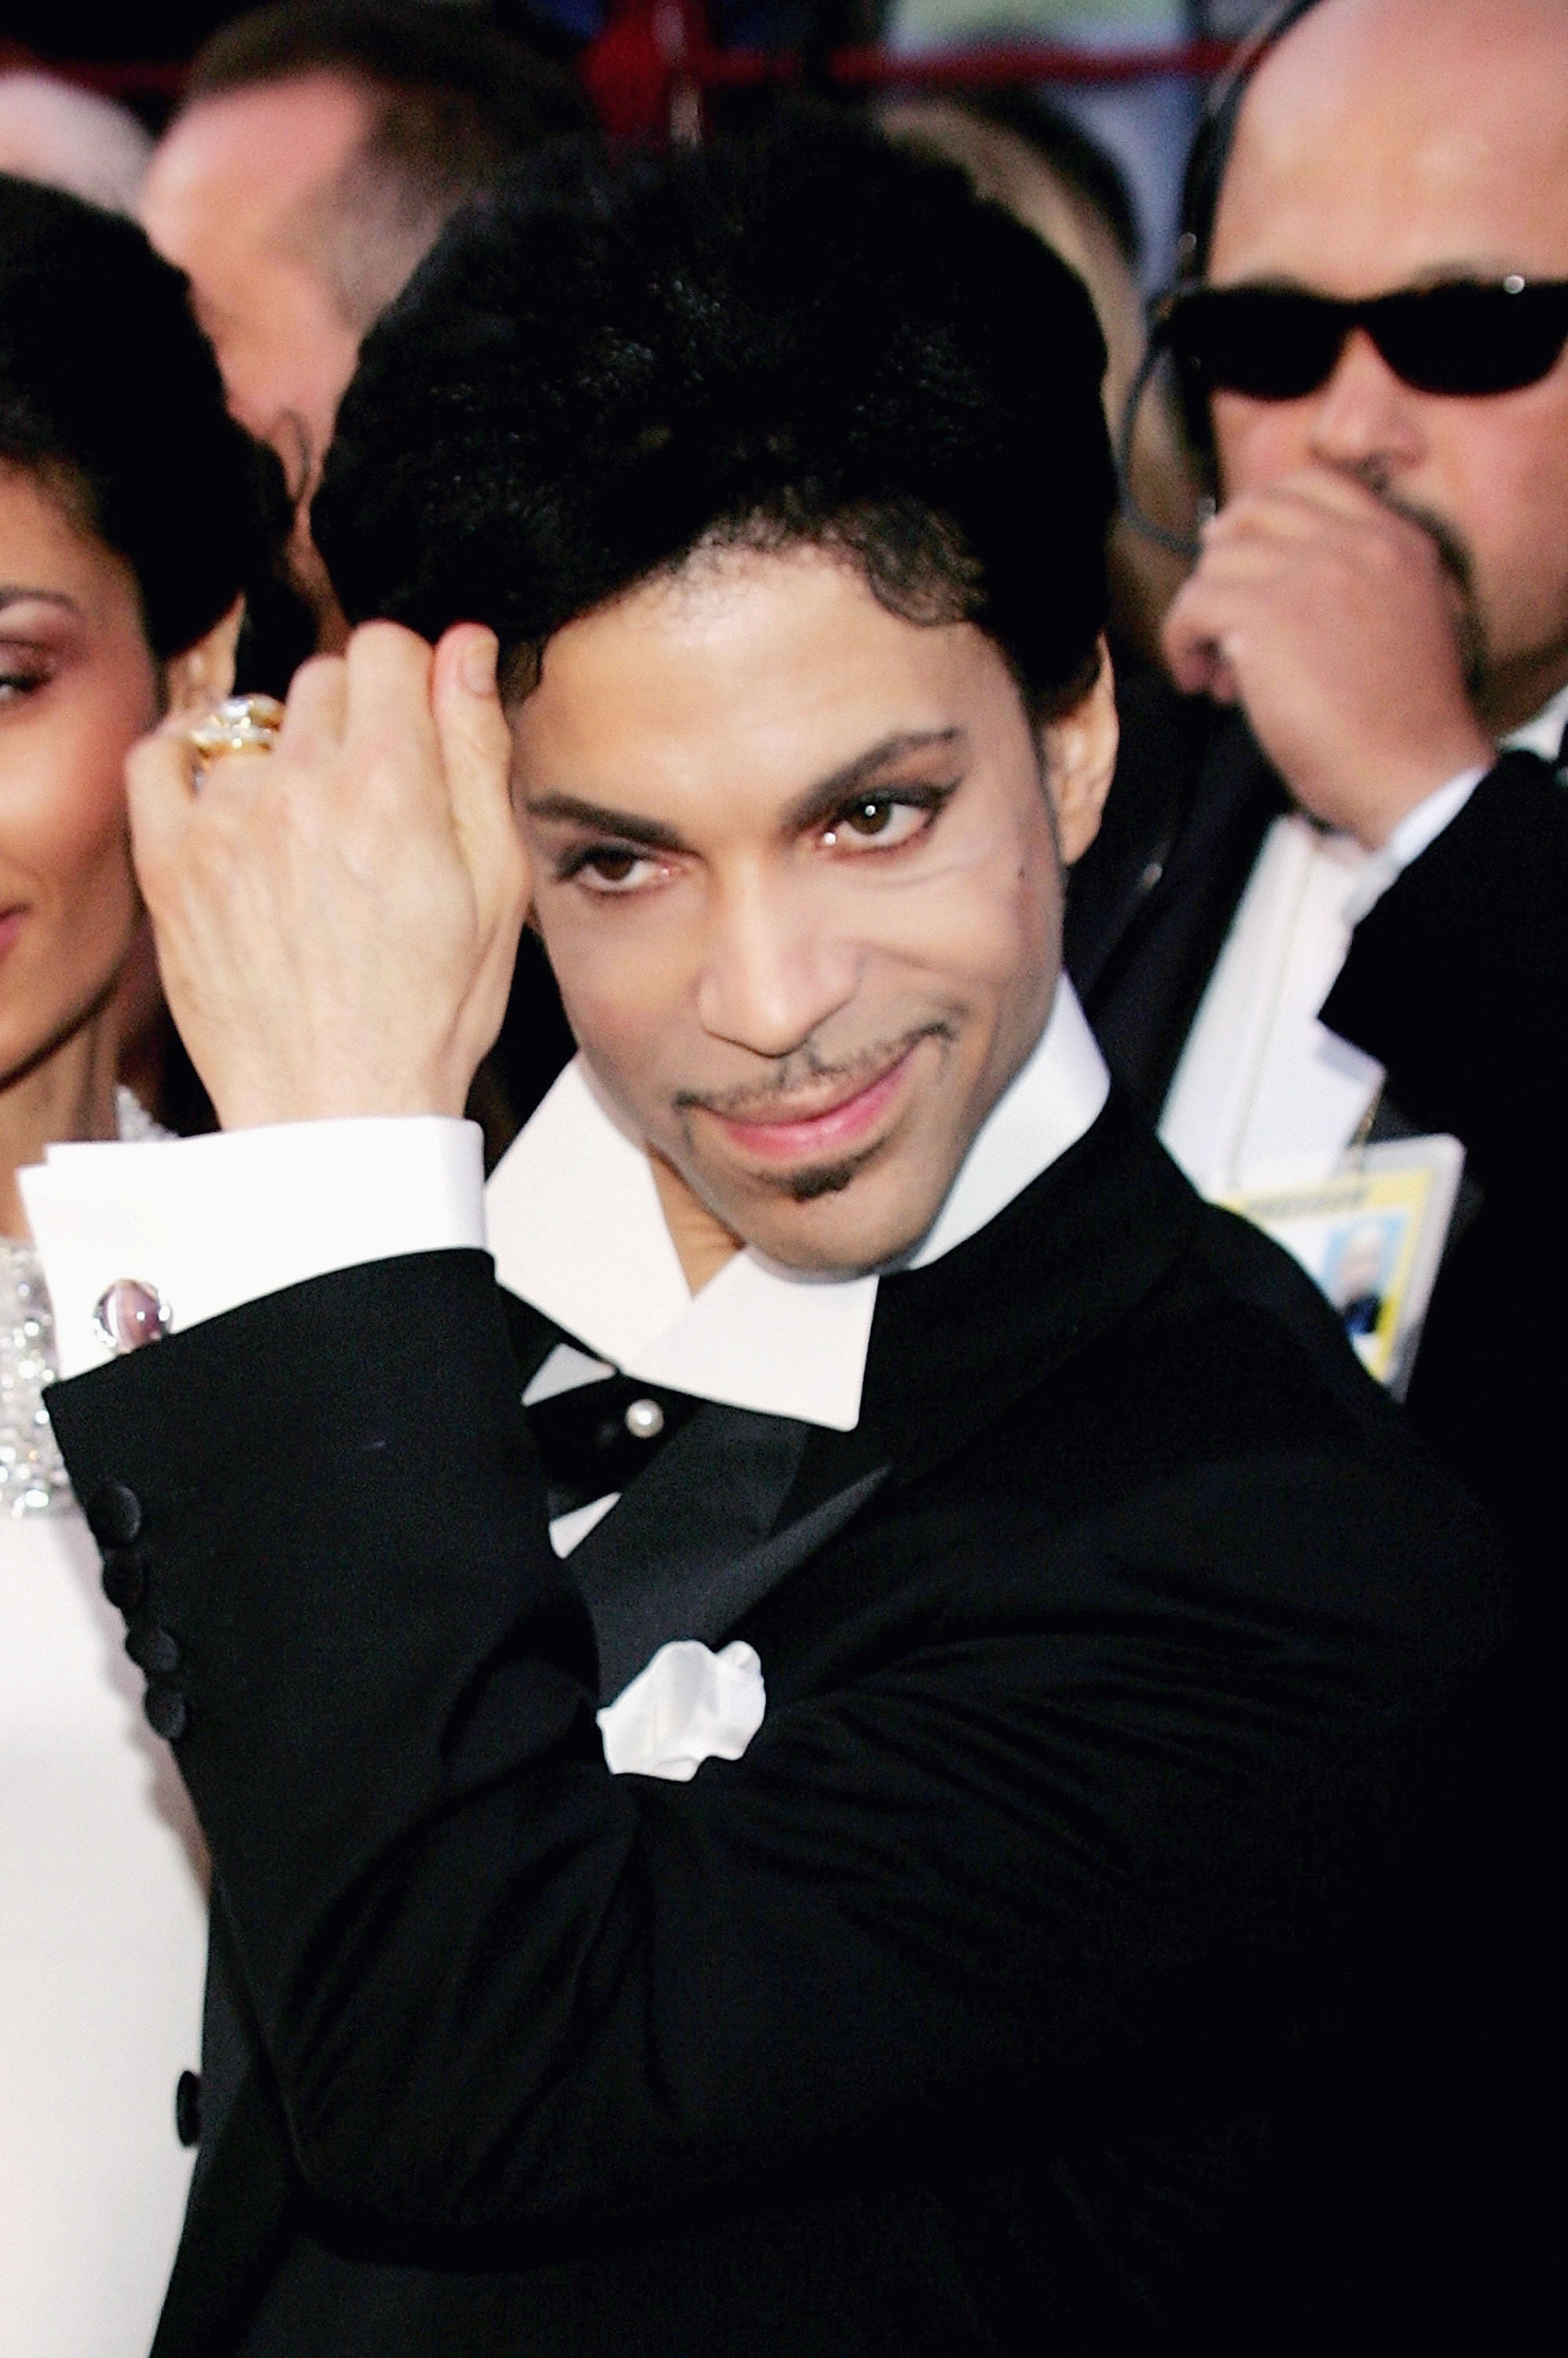 It's Been One Year, Here's Everything We Know About Prince's Passing